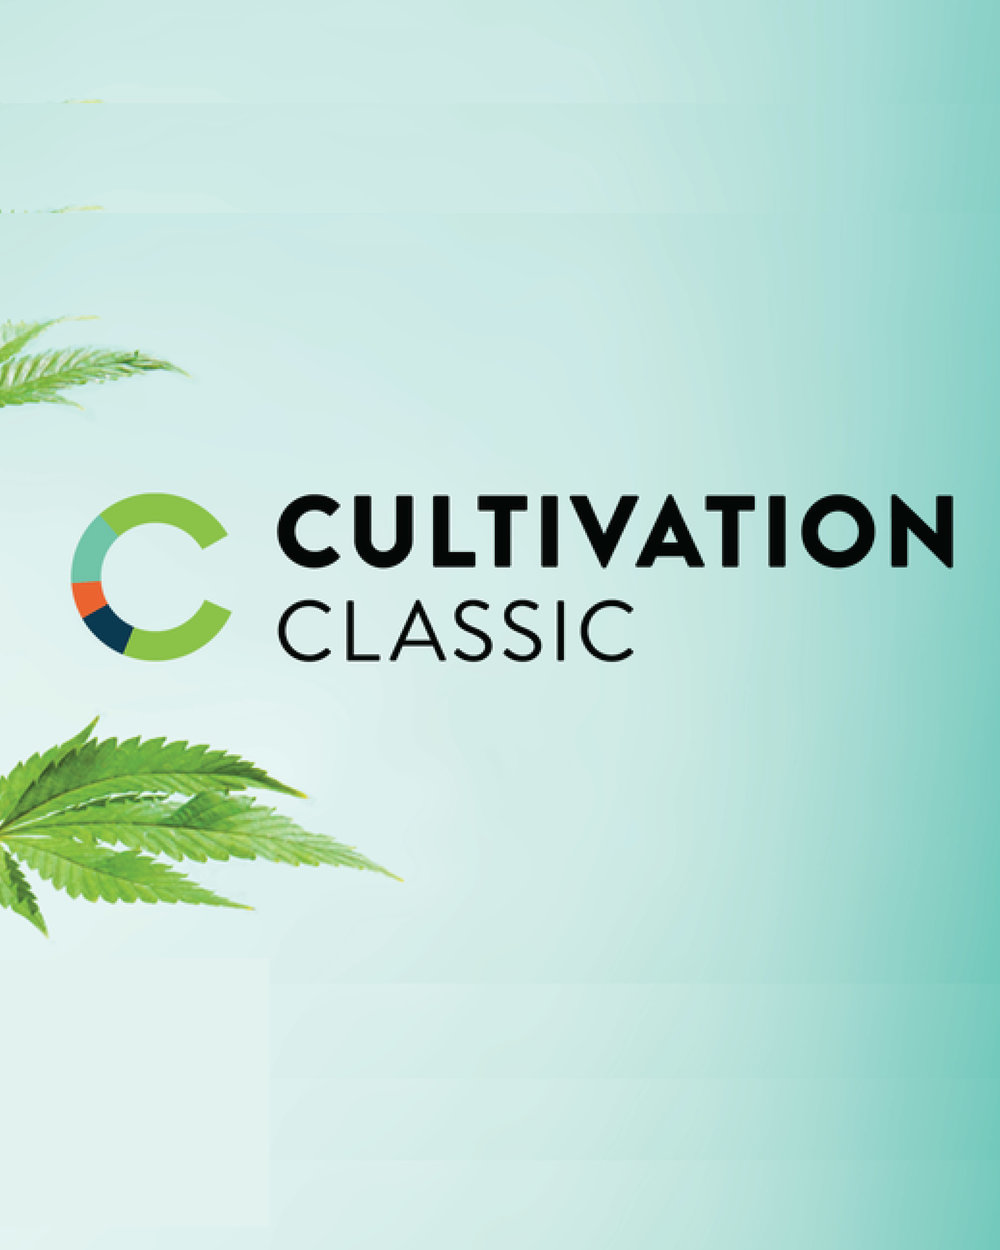 CULTIVATION CLASSIC, EVENT - The world's only cannabis competition exclusively for ethically-grown product.